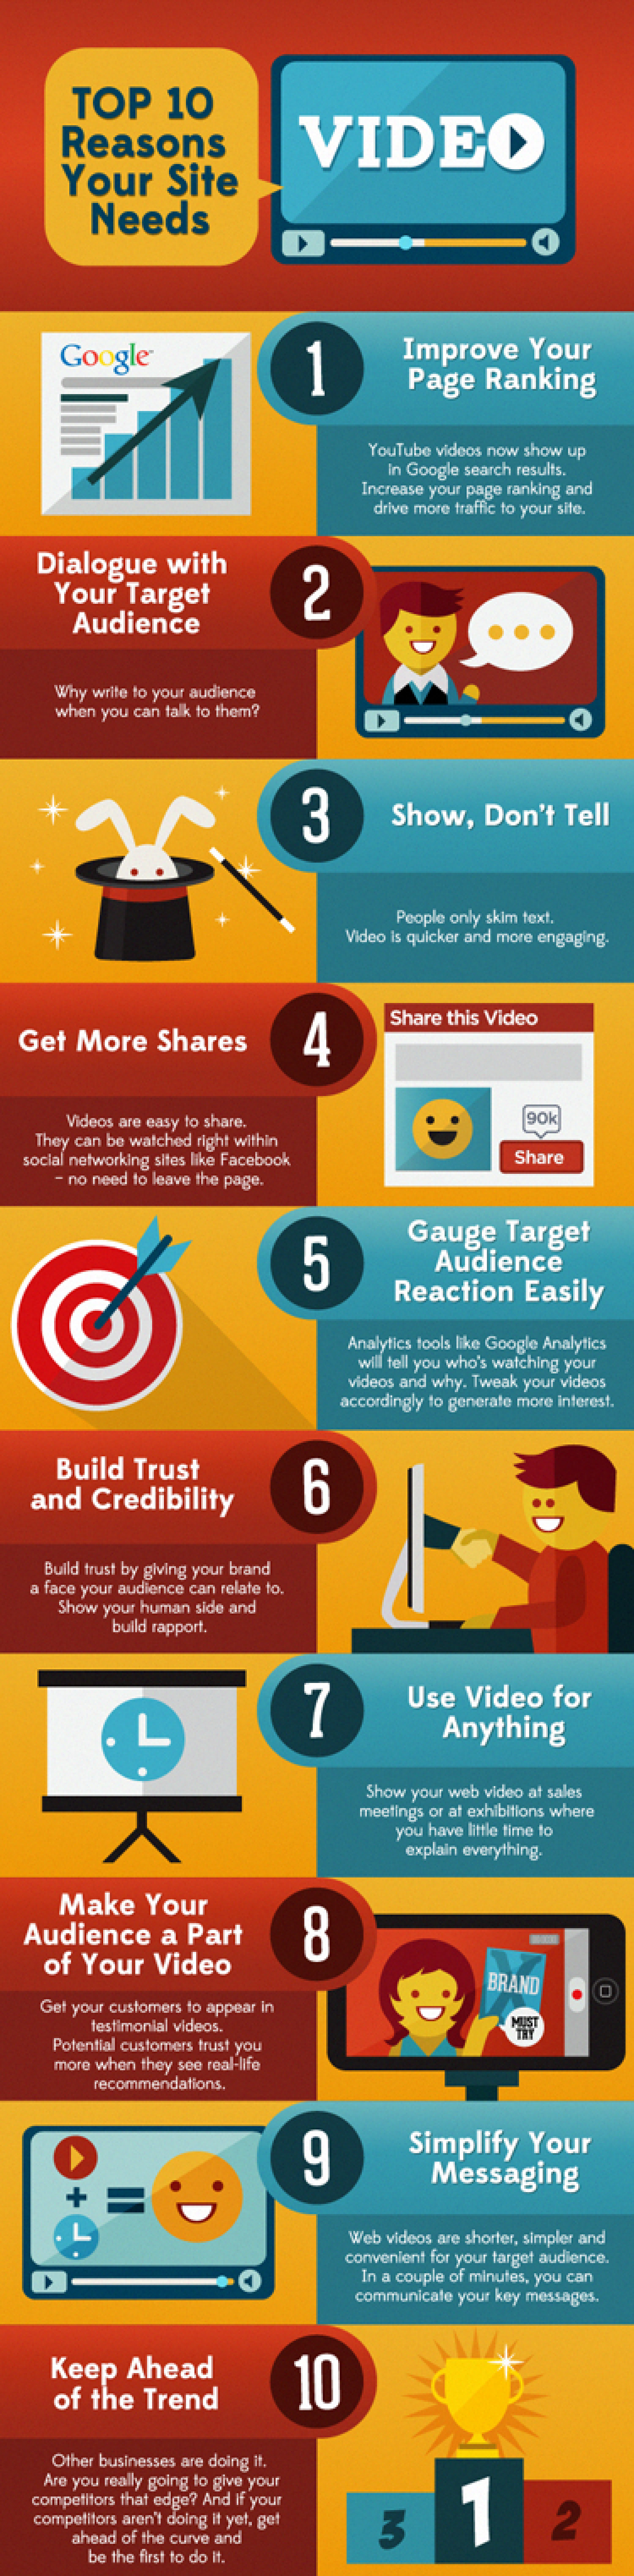 Top 10 Reasons Your Site Needs Video Infographic